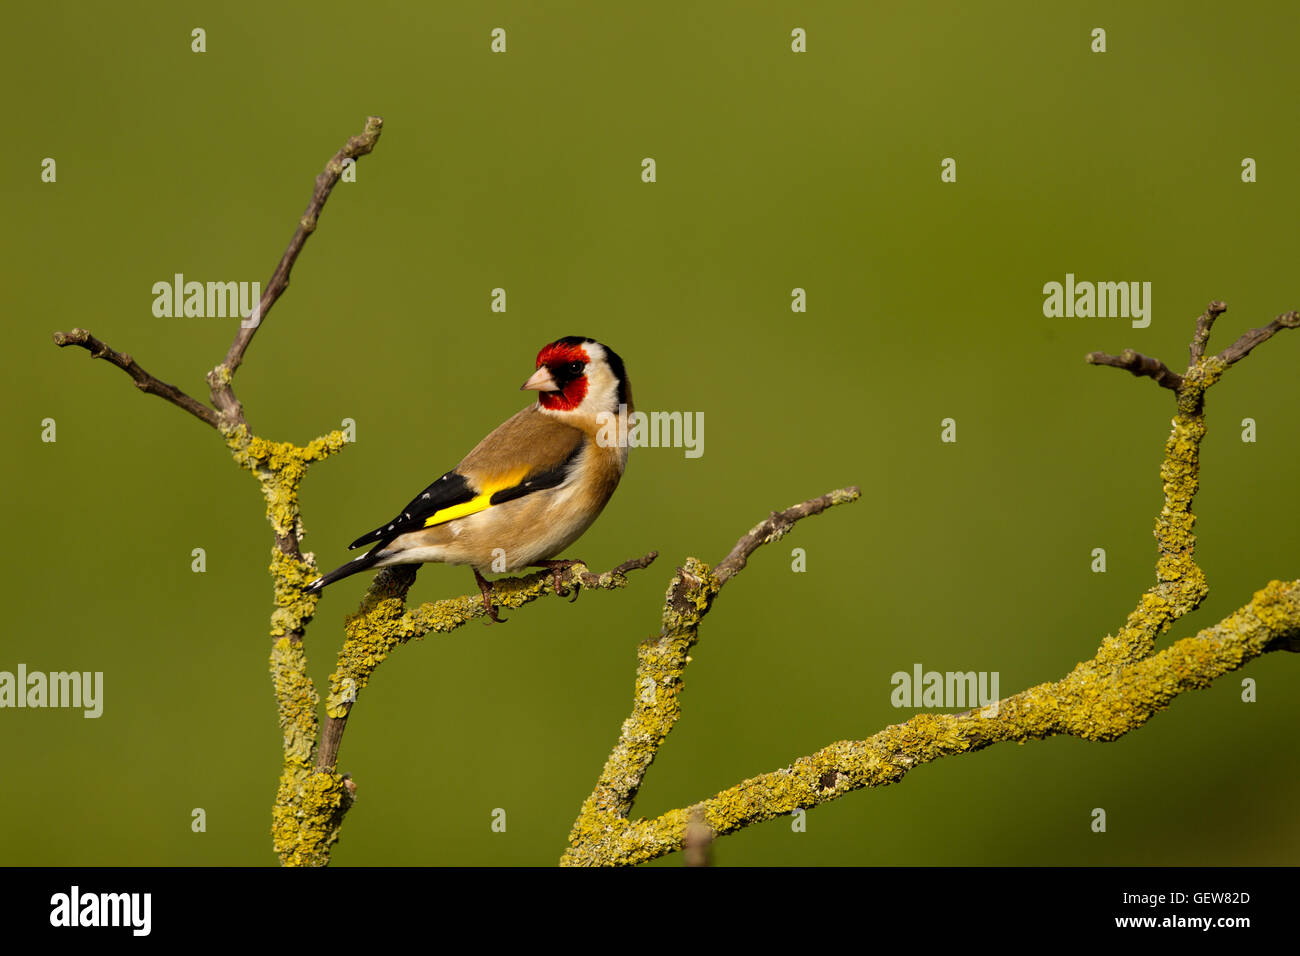 Goldfinch - Stock Image